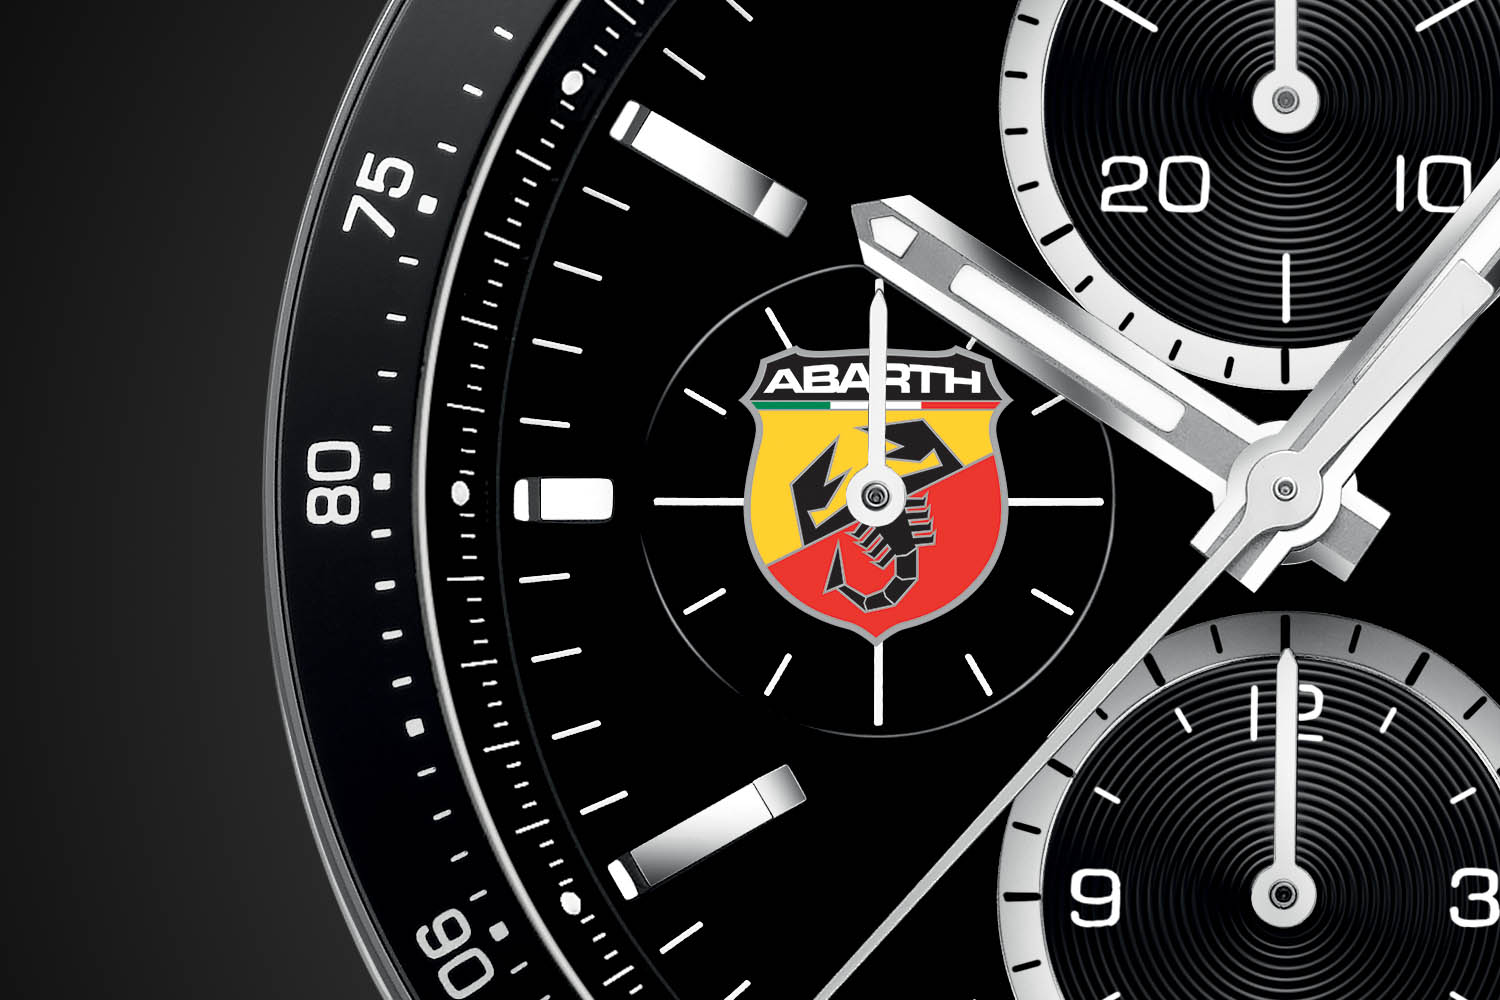 TAG Heuer Carrera Abarth 595 Competizione by TAG Heuer - 3